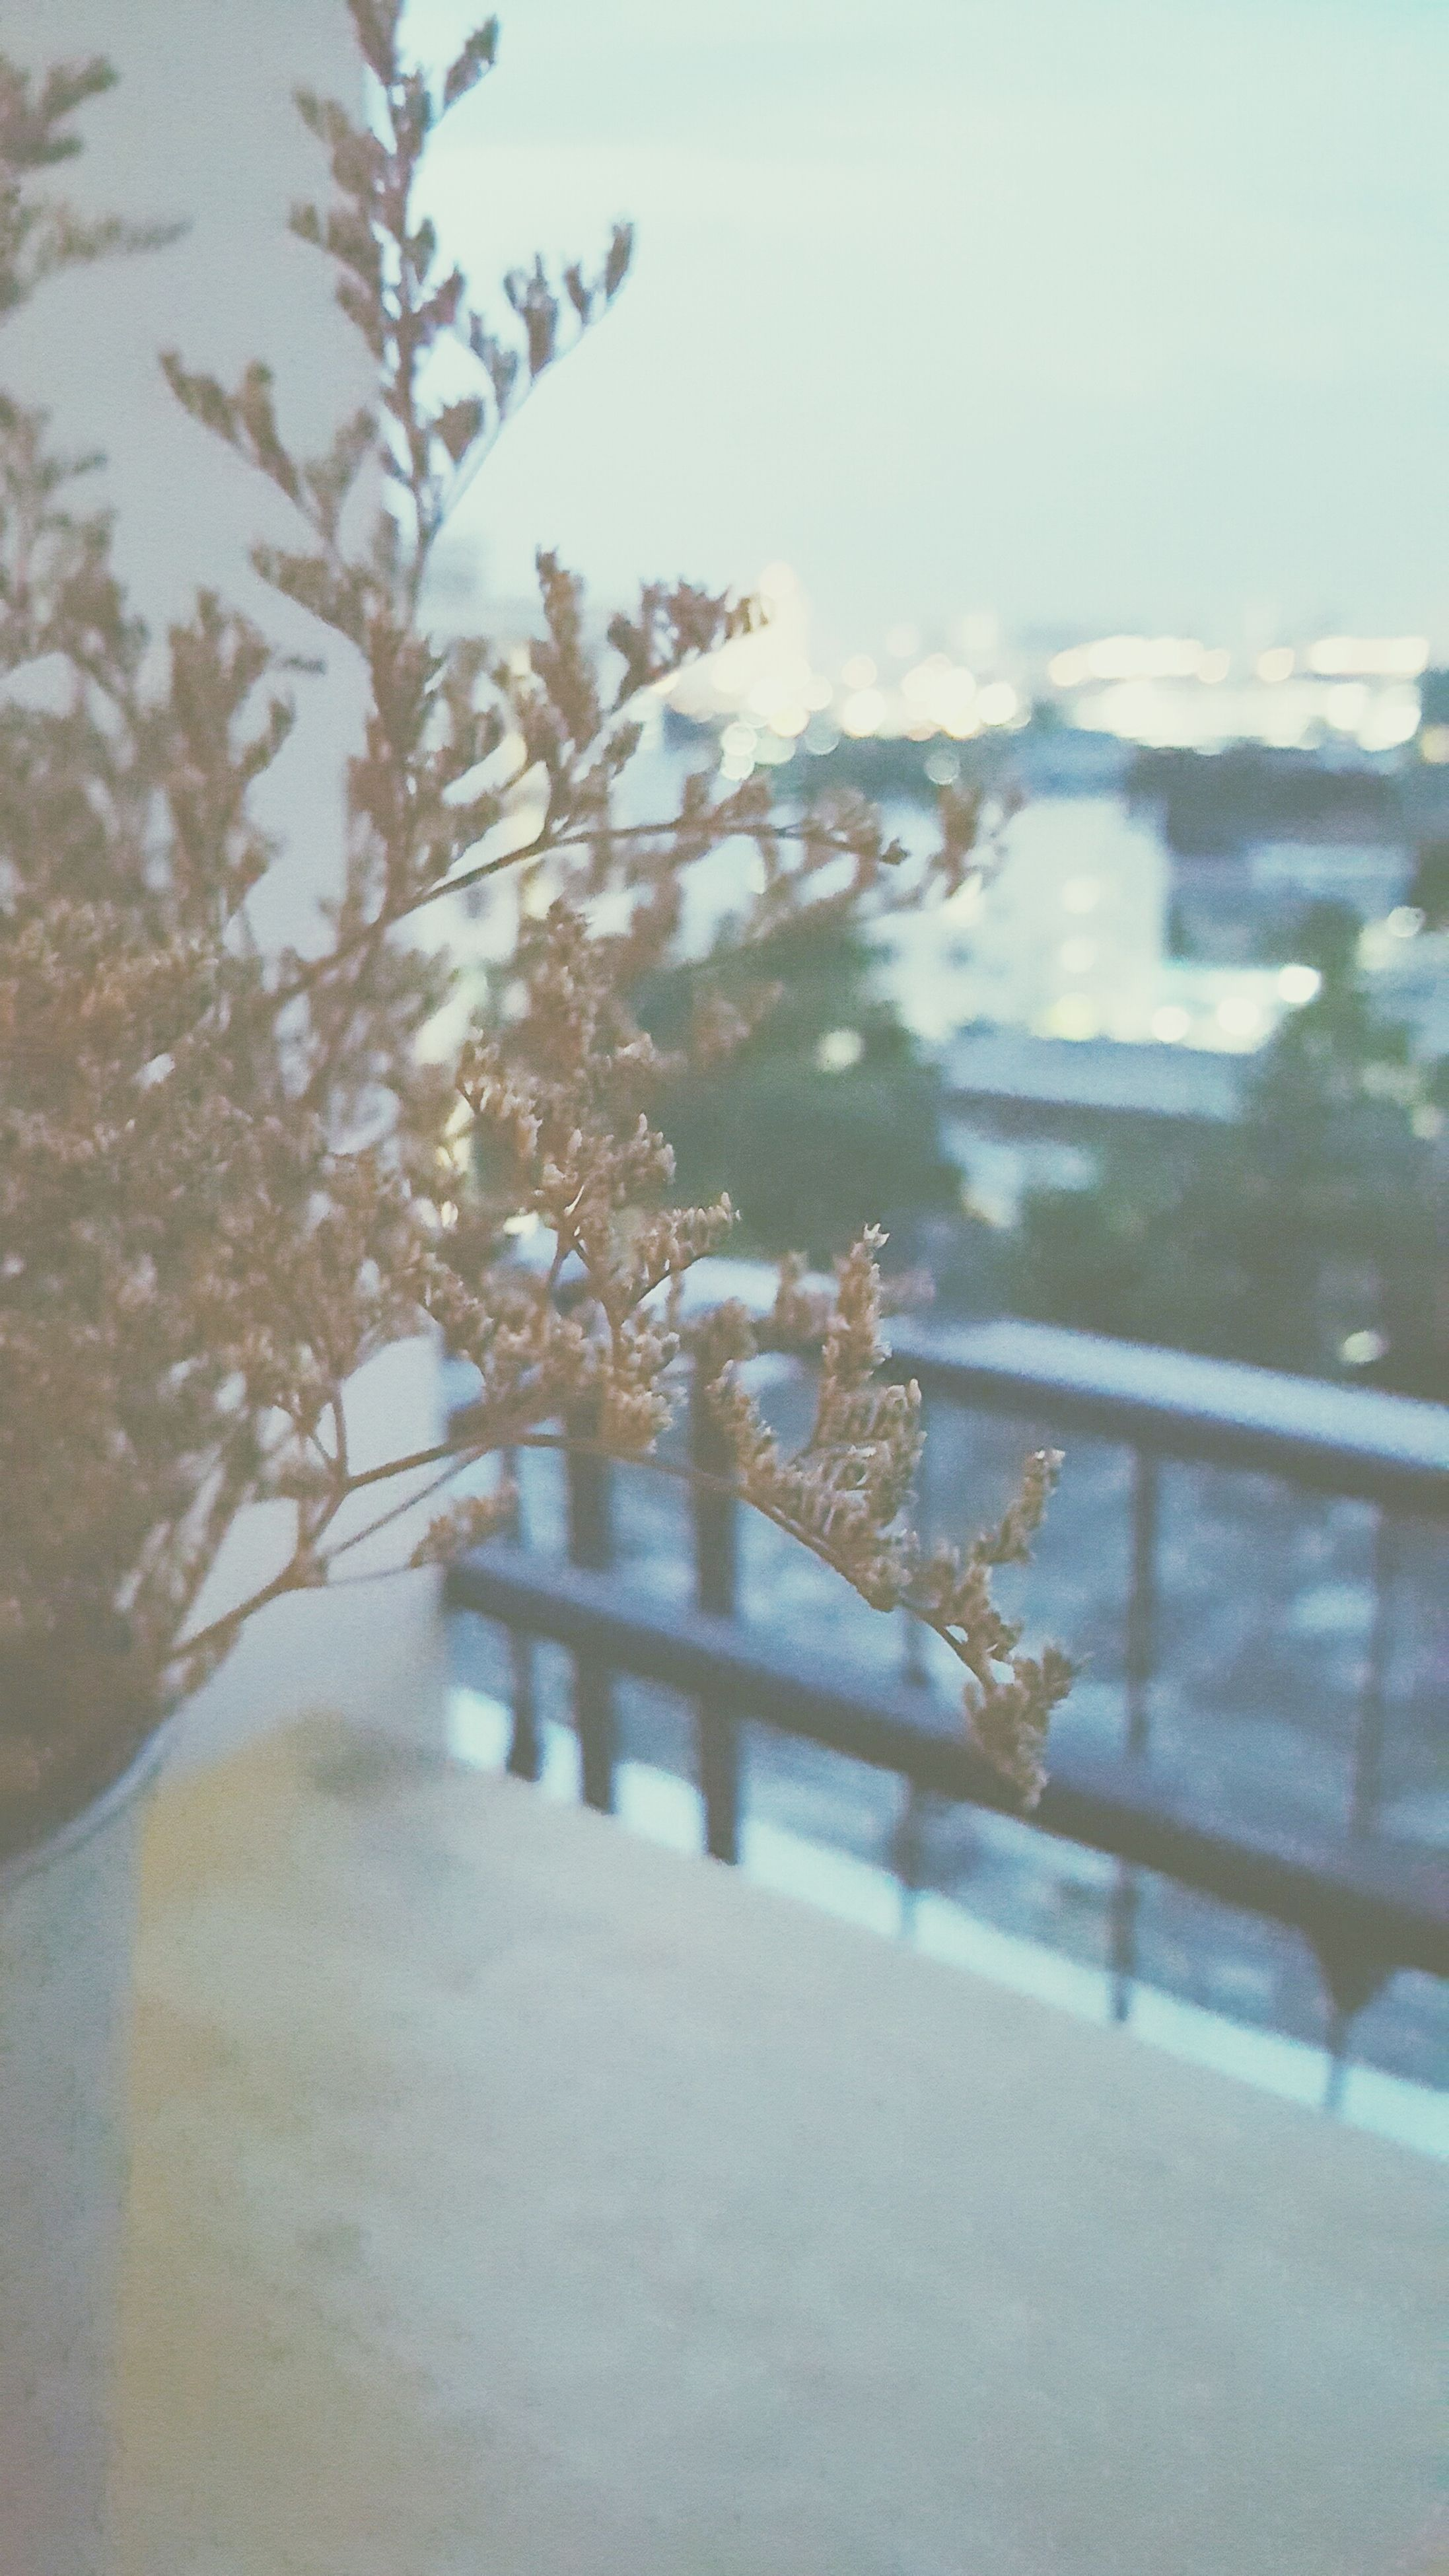 selective focus, plant, snow, window, winter, transportation, close-up, city, growth, day, nature, sky, no people, focus on foreground, snow covered, uncultivated, journey